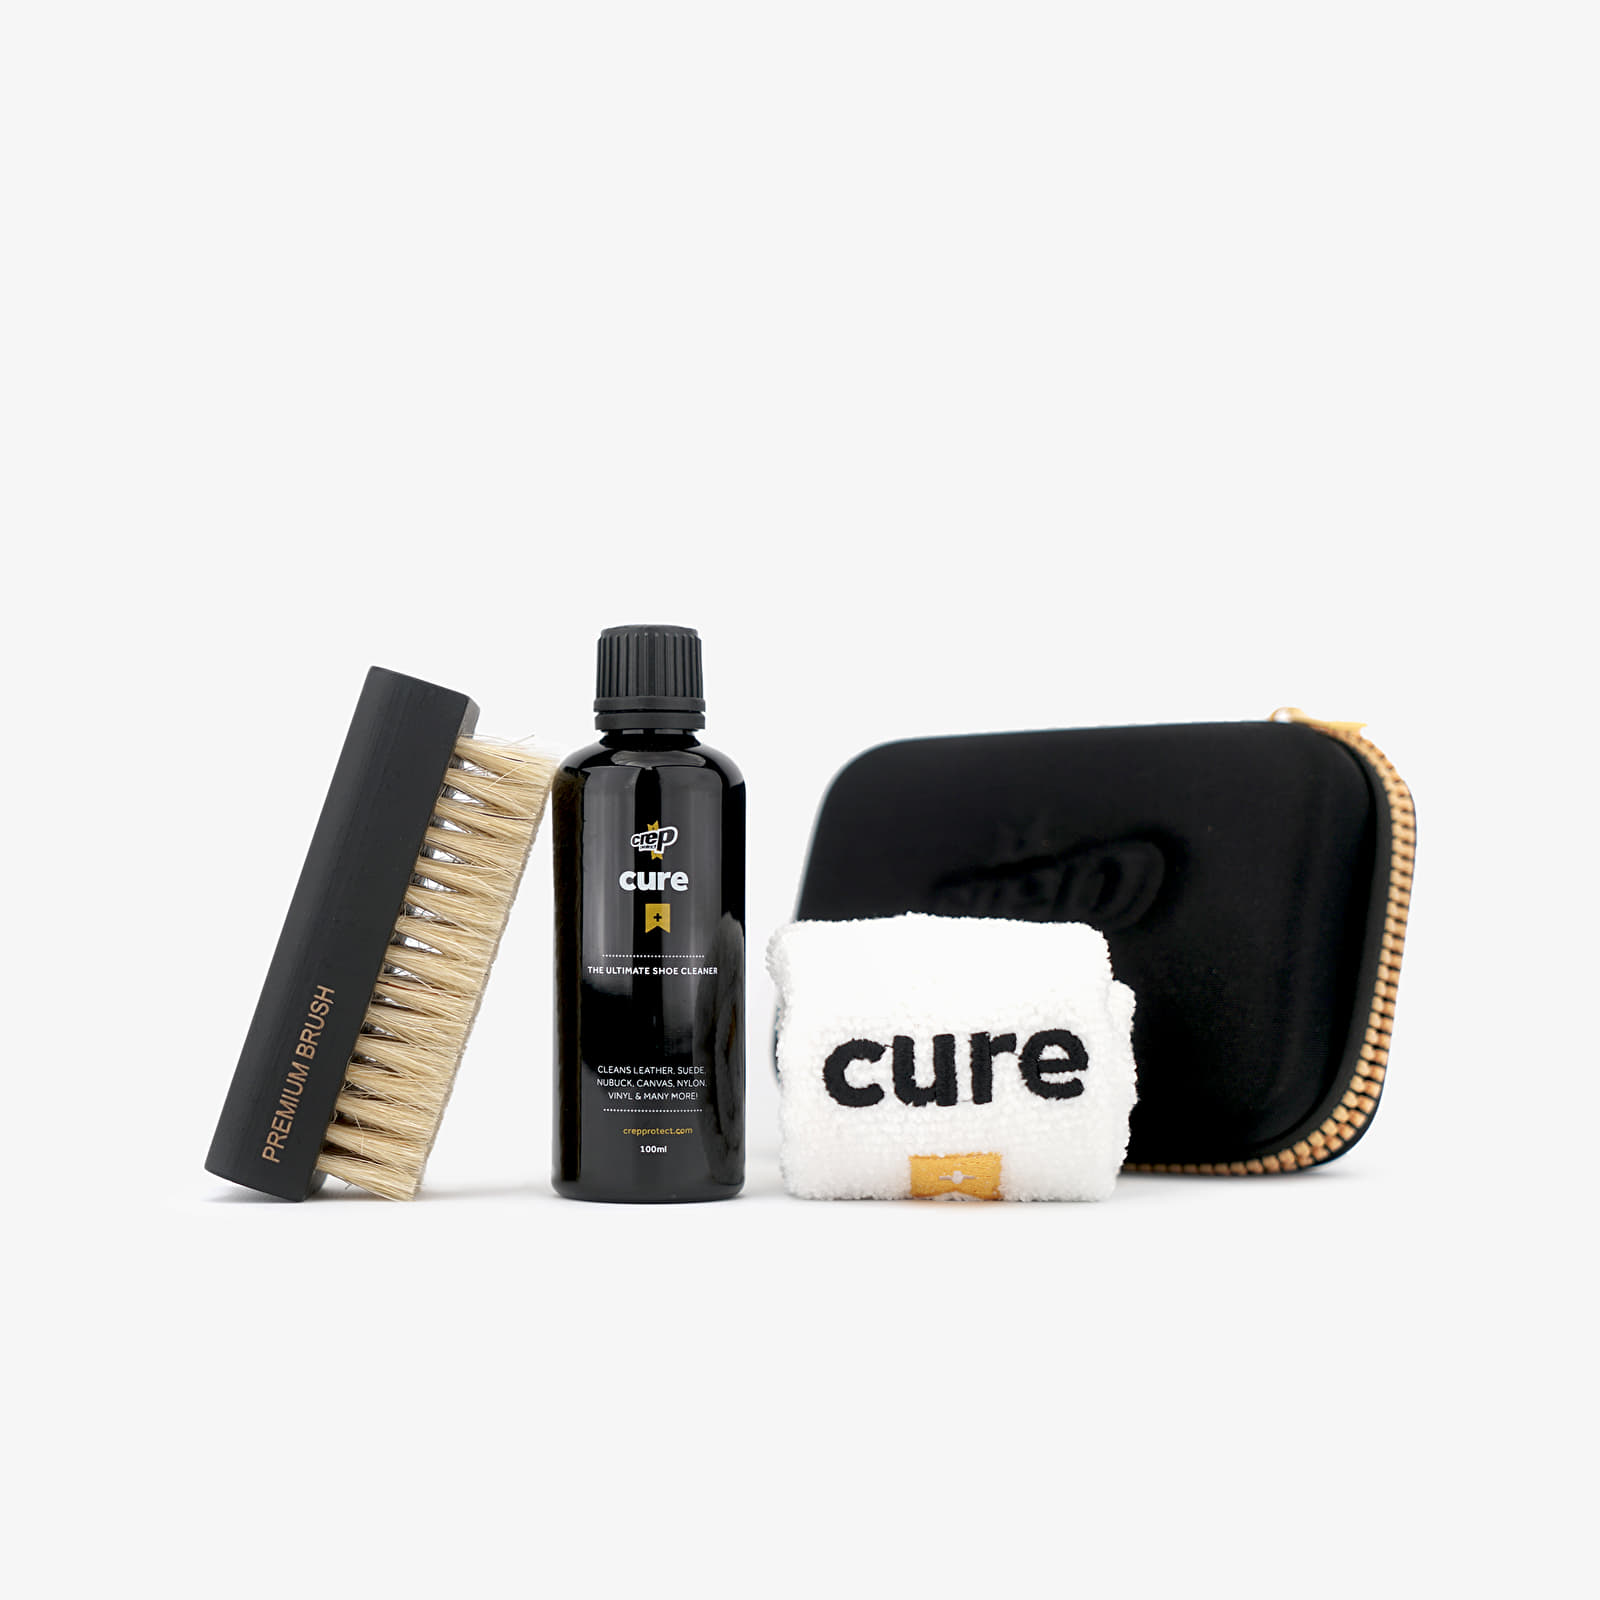 Shoe care Crep Protect The Ultimate Shoe Cleaner Kit